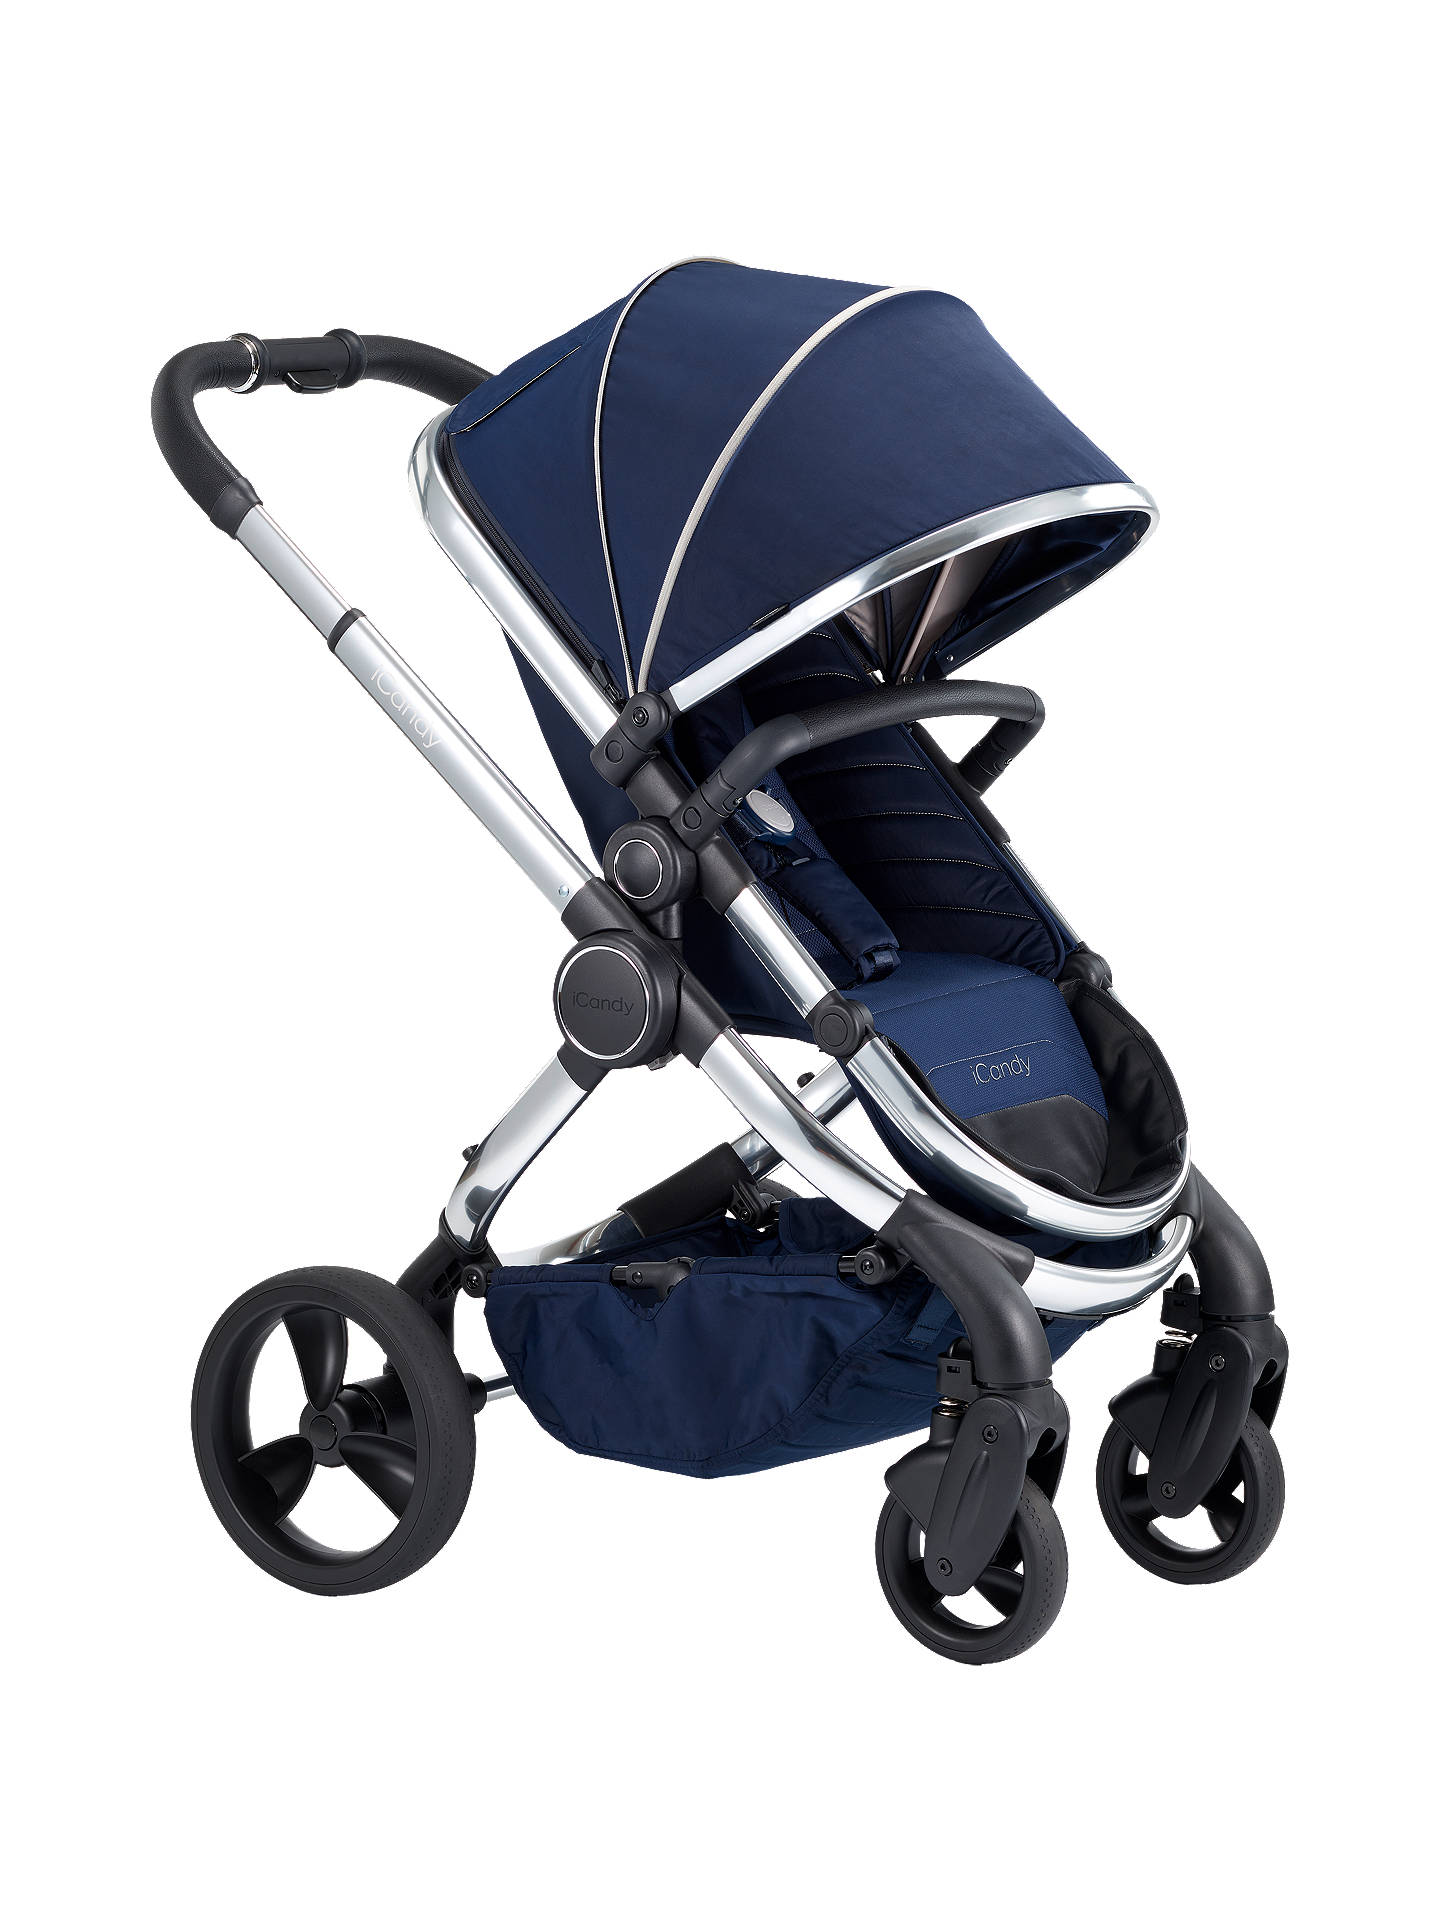 b662fa1b4f1bb Buy iCandy Peach Chrome Pushchair and Carrycot, Indigo Online at  johnlewis.com ...